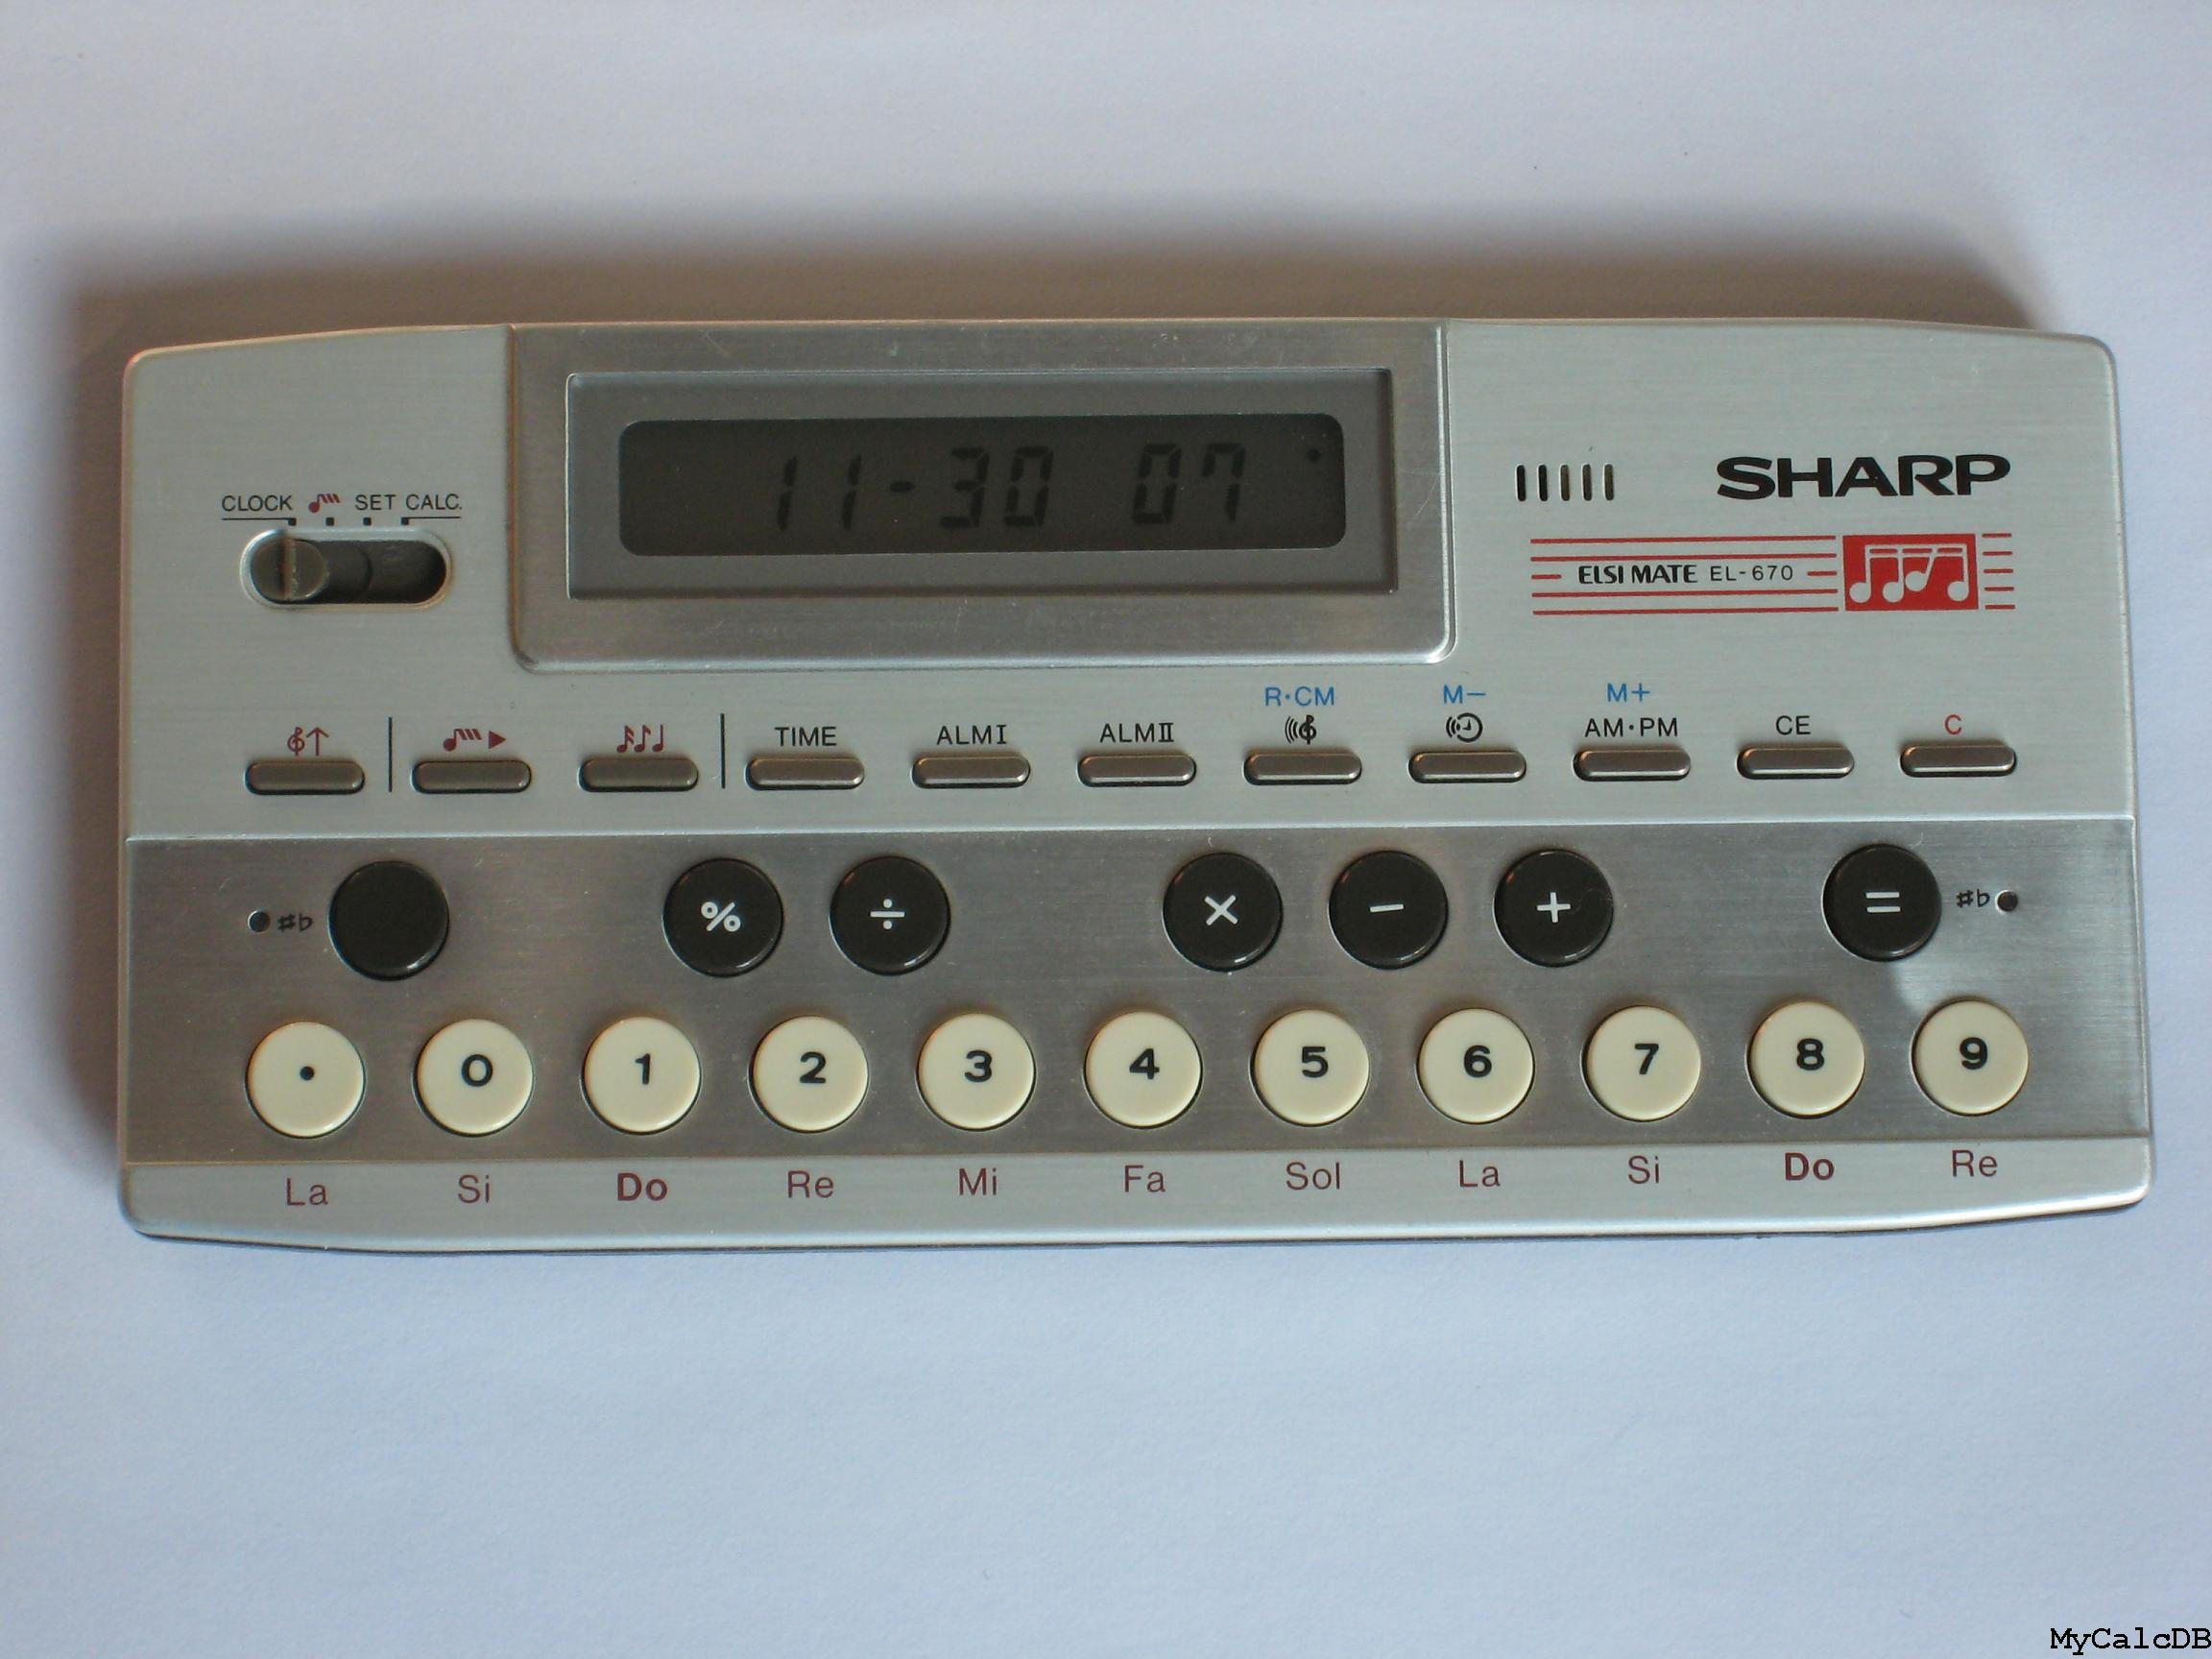 Sharp EL-670